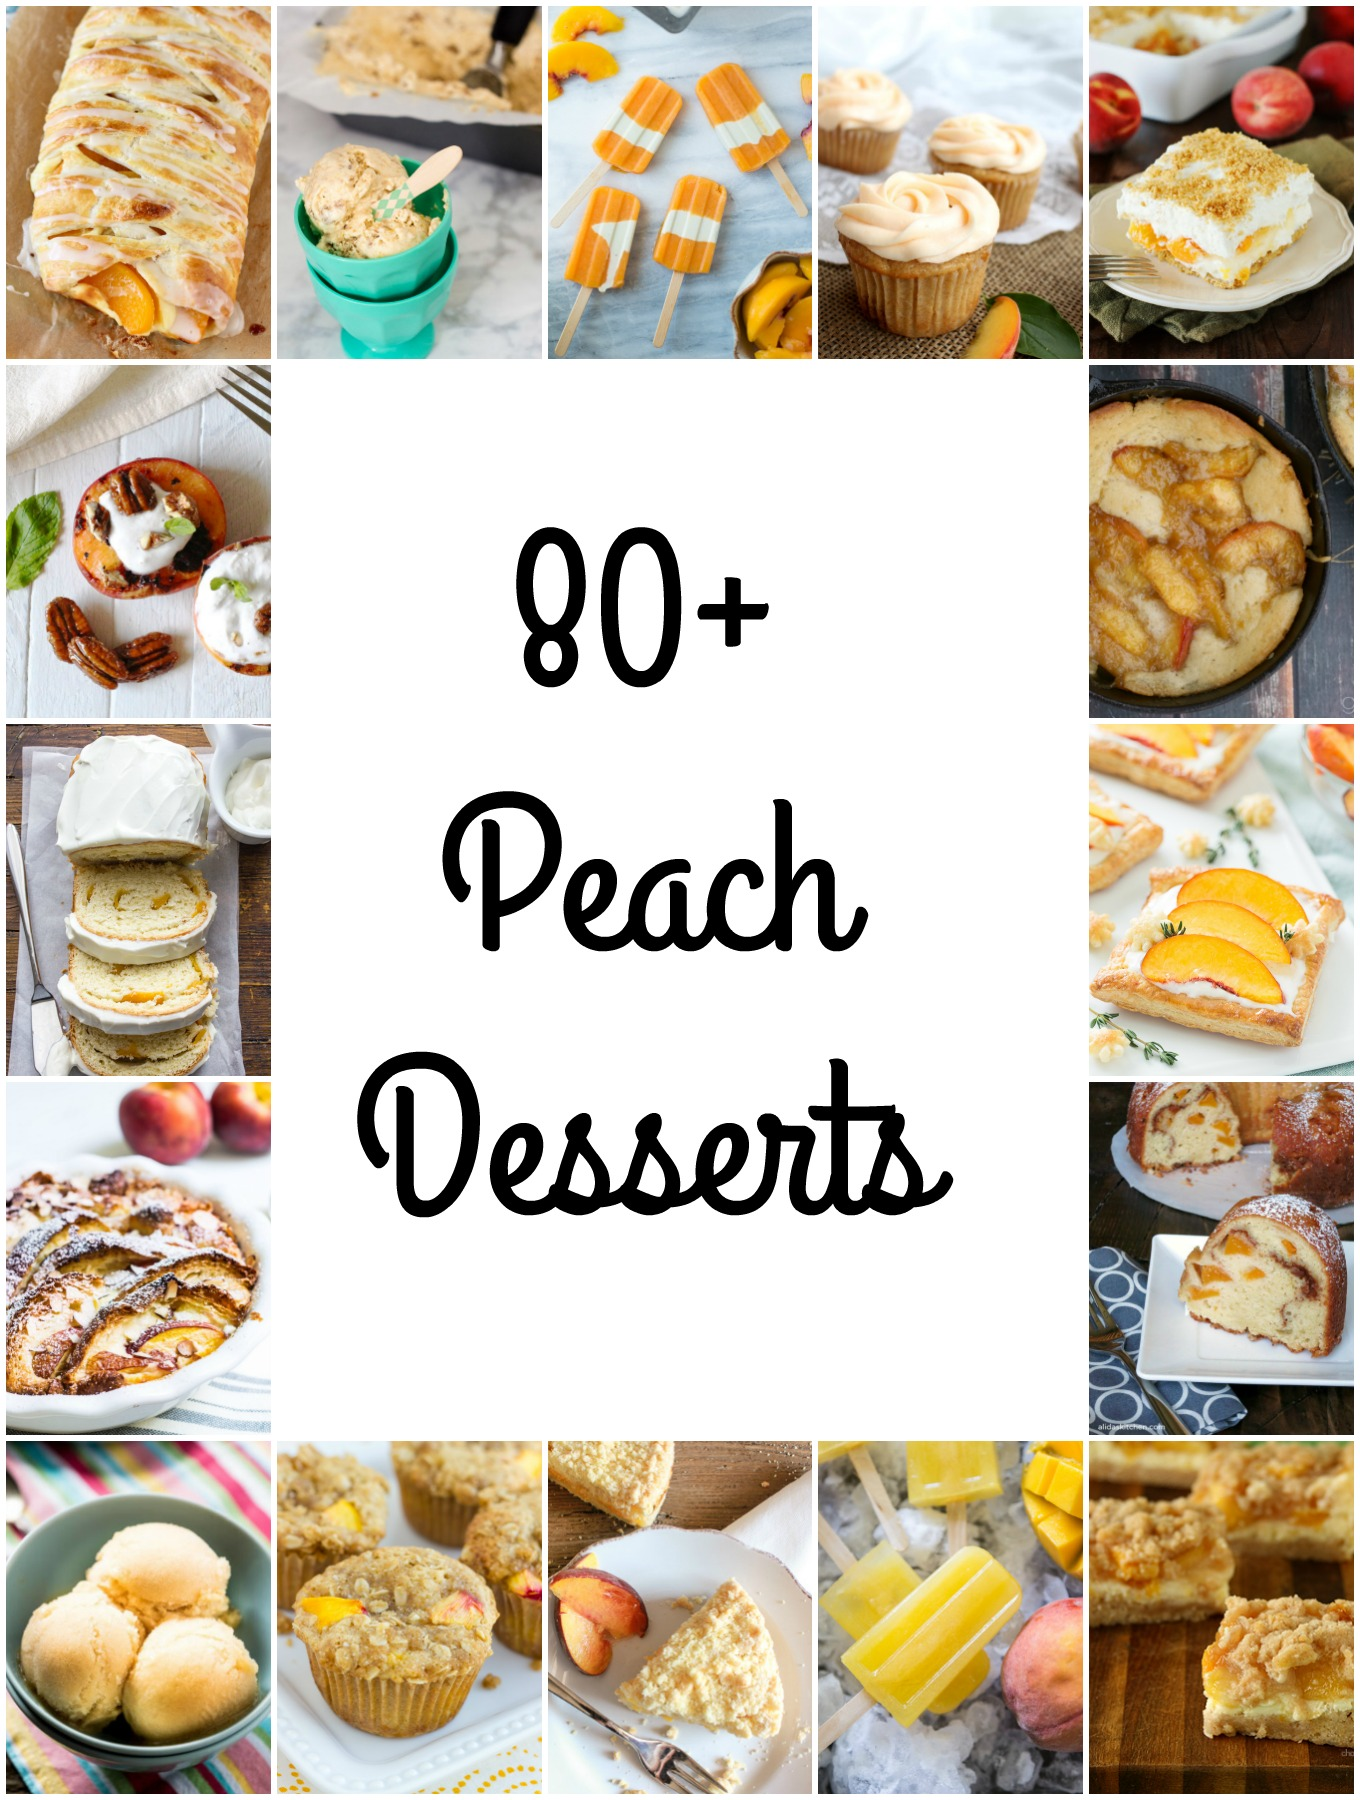 I've compiled over 80 peach dessert recipes featuring the fruit in cakes, cupcakes, cheesecakes, cookies, ice cream, pies and more for National Peach Month.